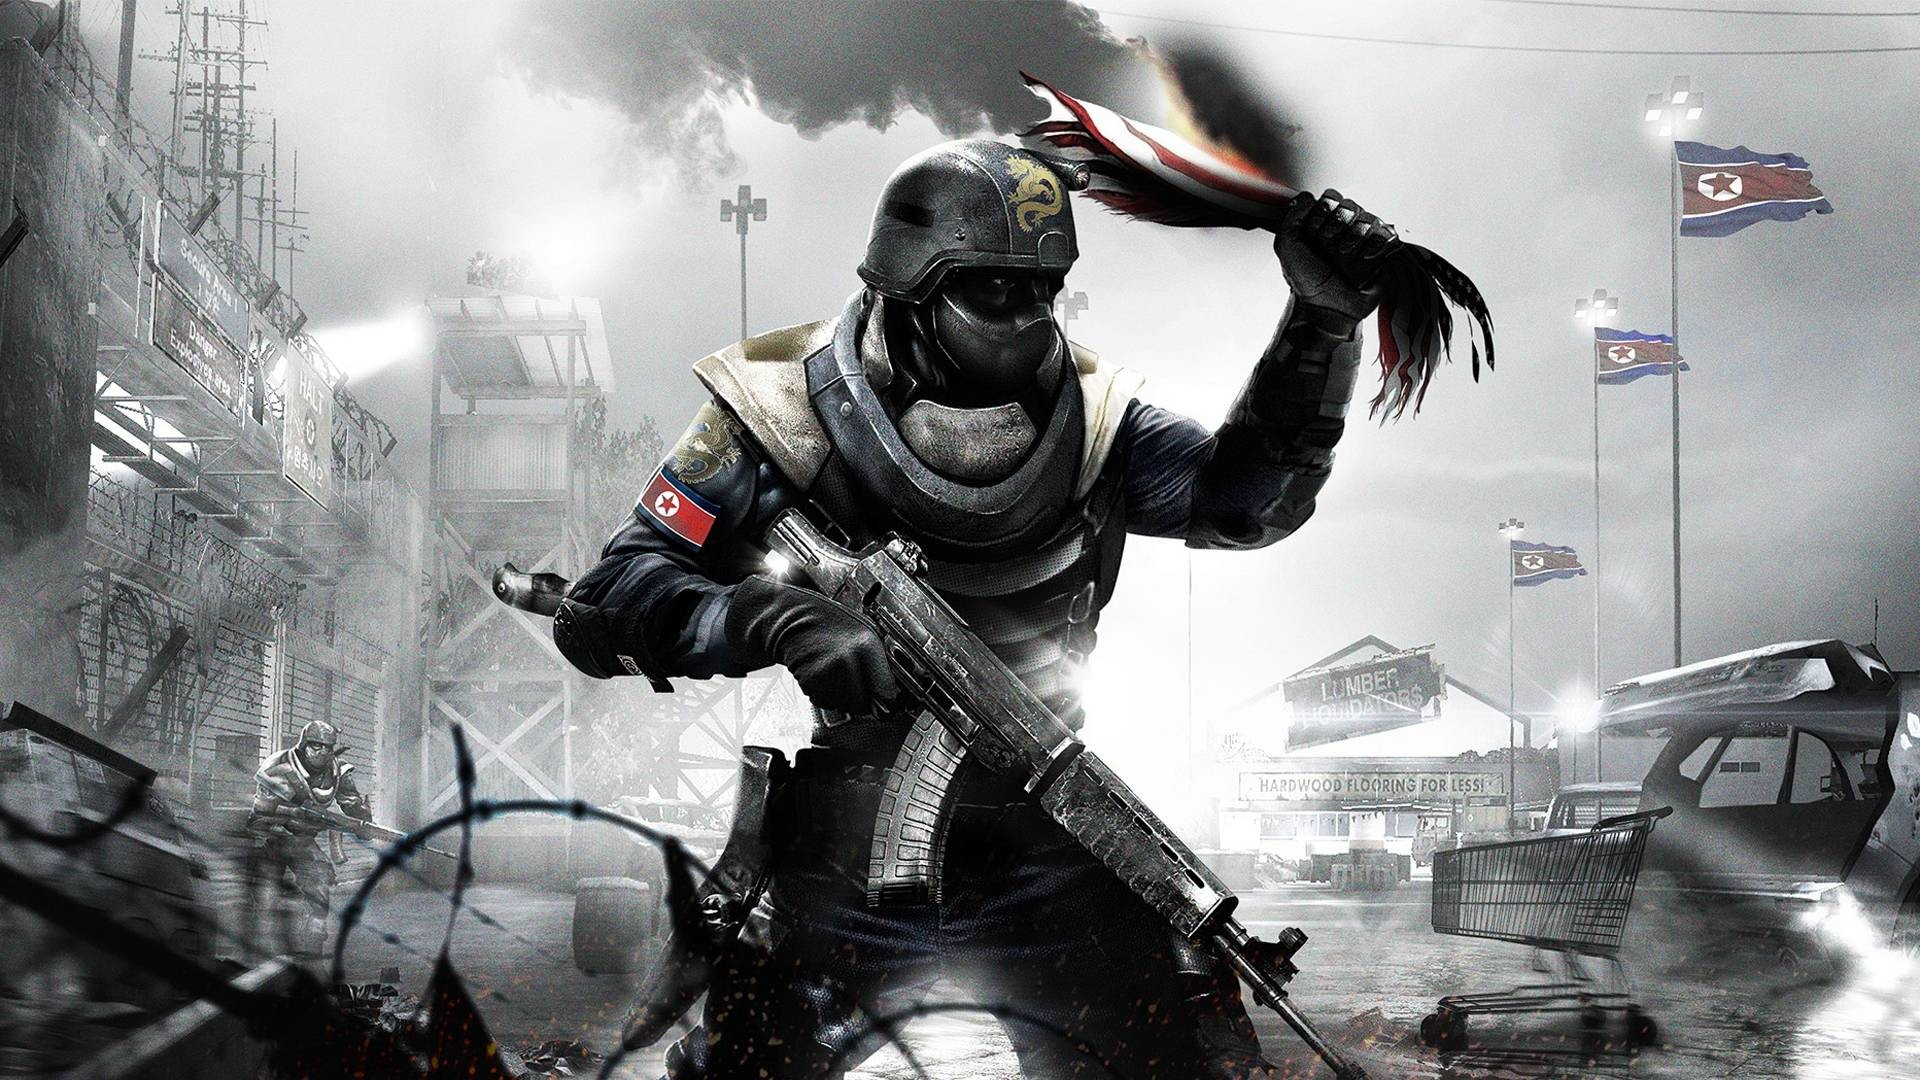 1920x1080 Homefront Wallpapers in full 1080P HD Â« GamingBolt.com: Video Game .